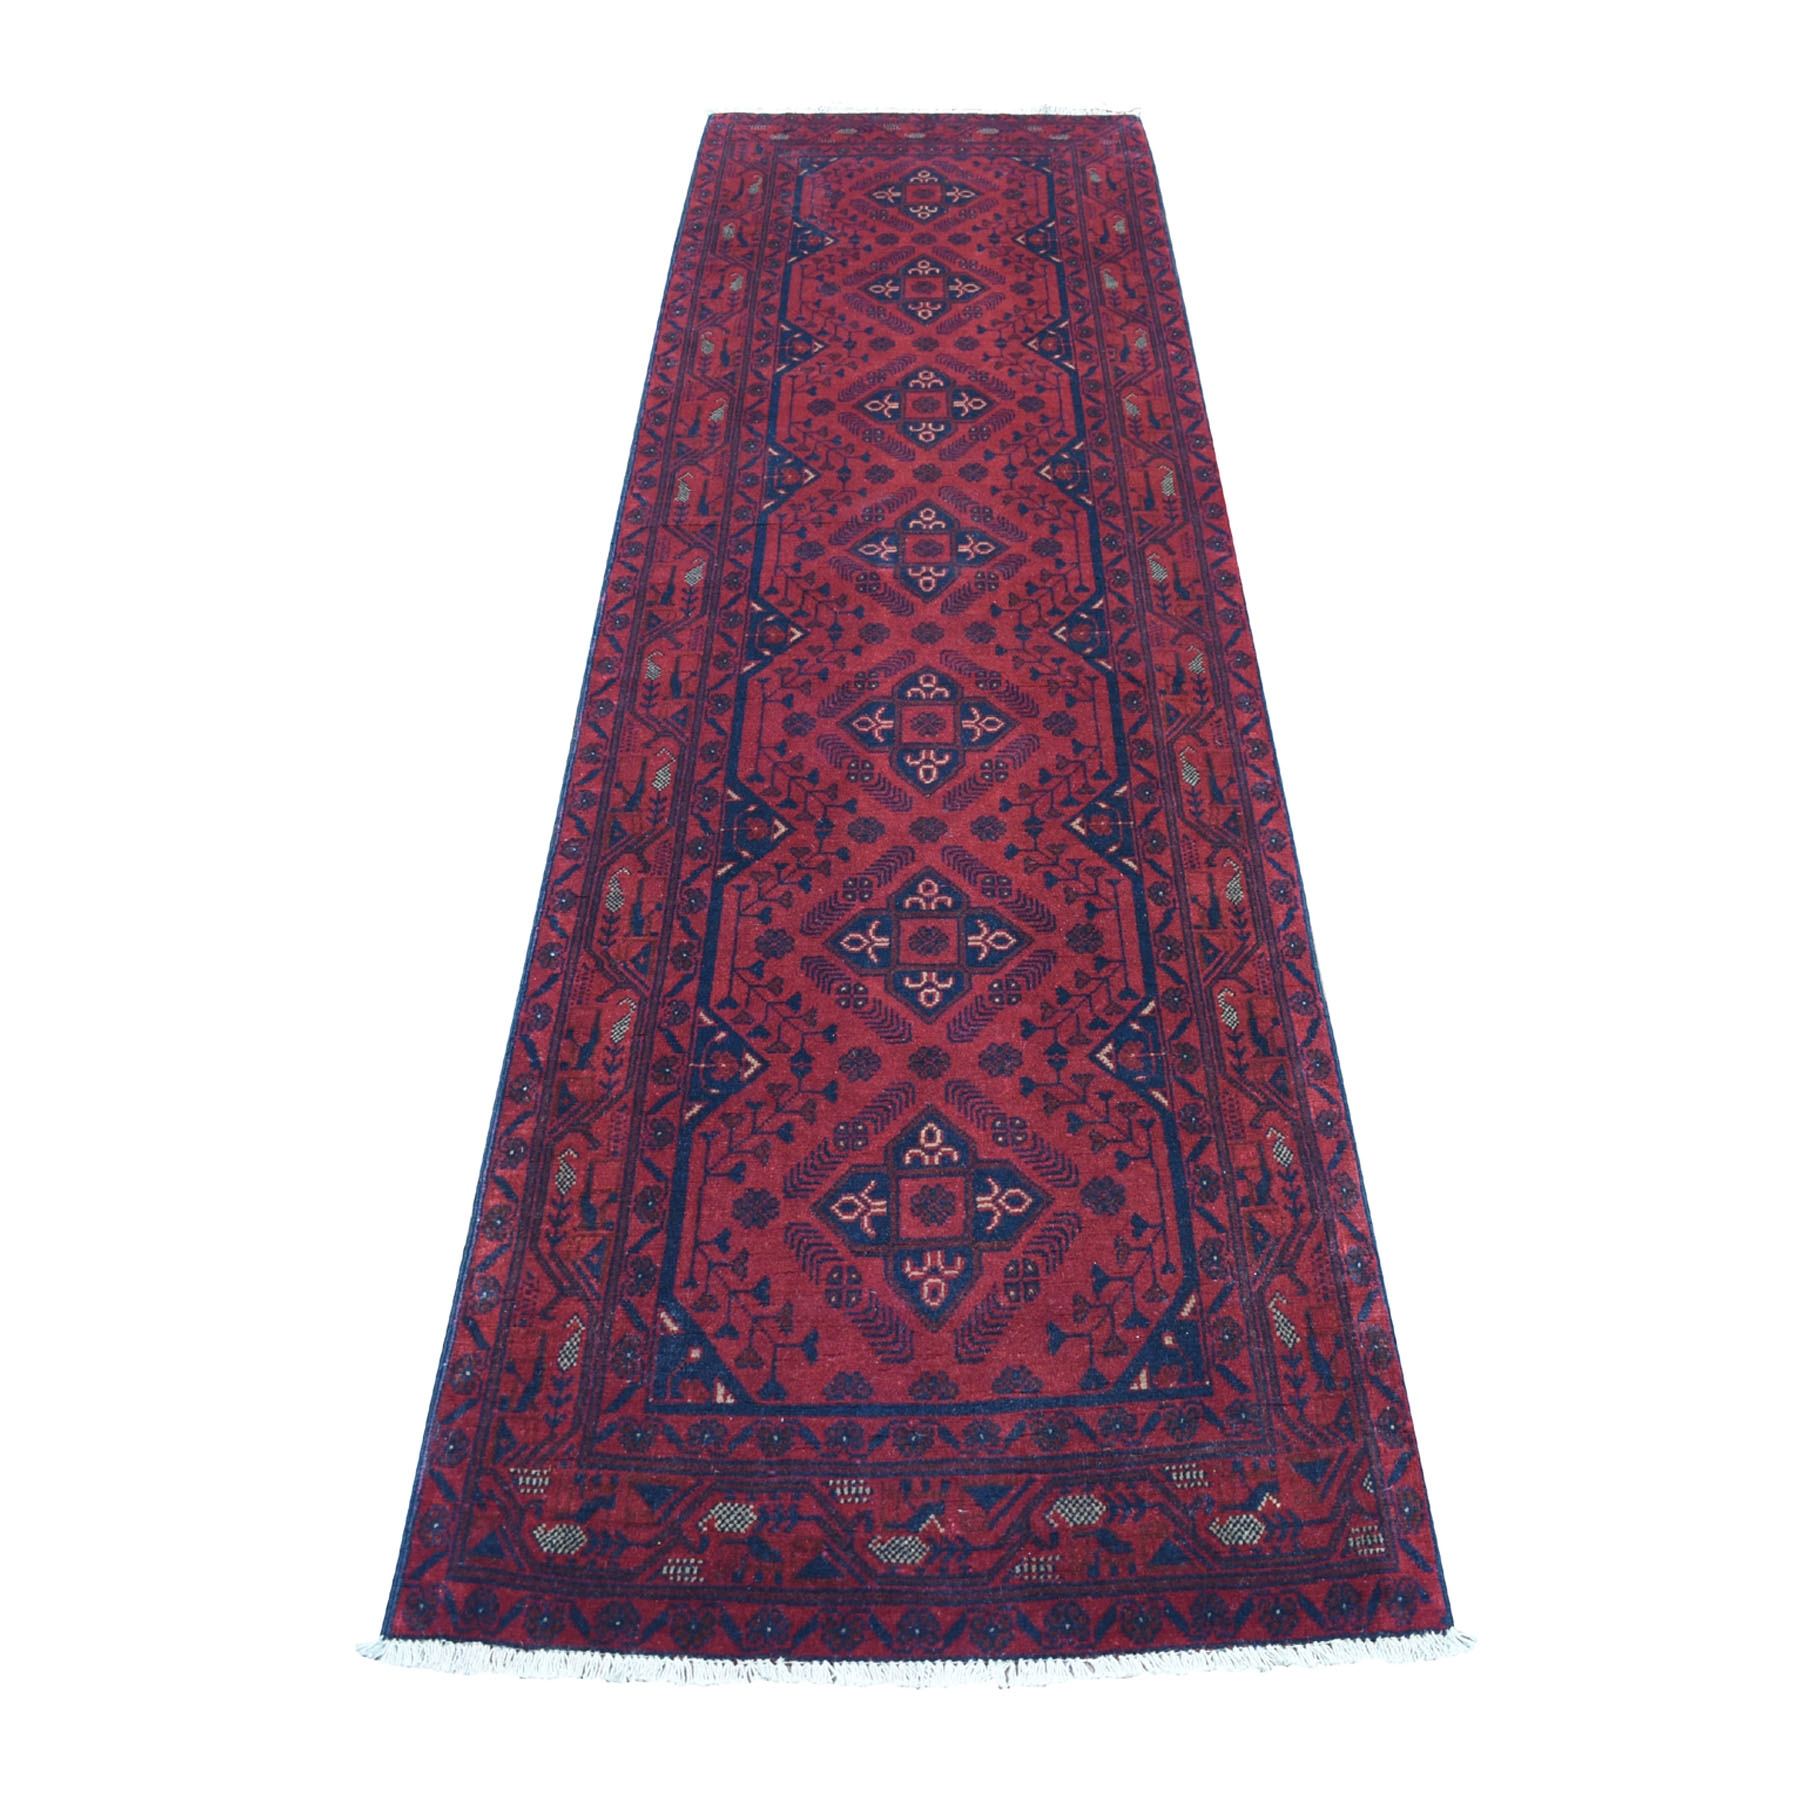 "2'9""x9'8"" Deep and Saturated Red Geometric Afghan Andkhoy Runner Pure Wool Hand Woven Oriental Rug"